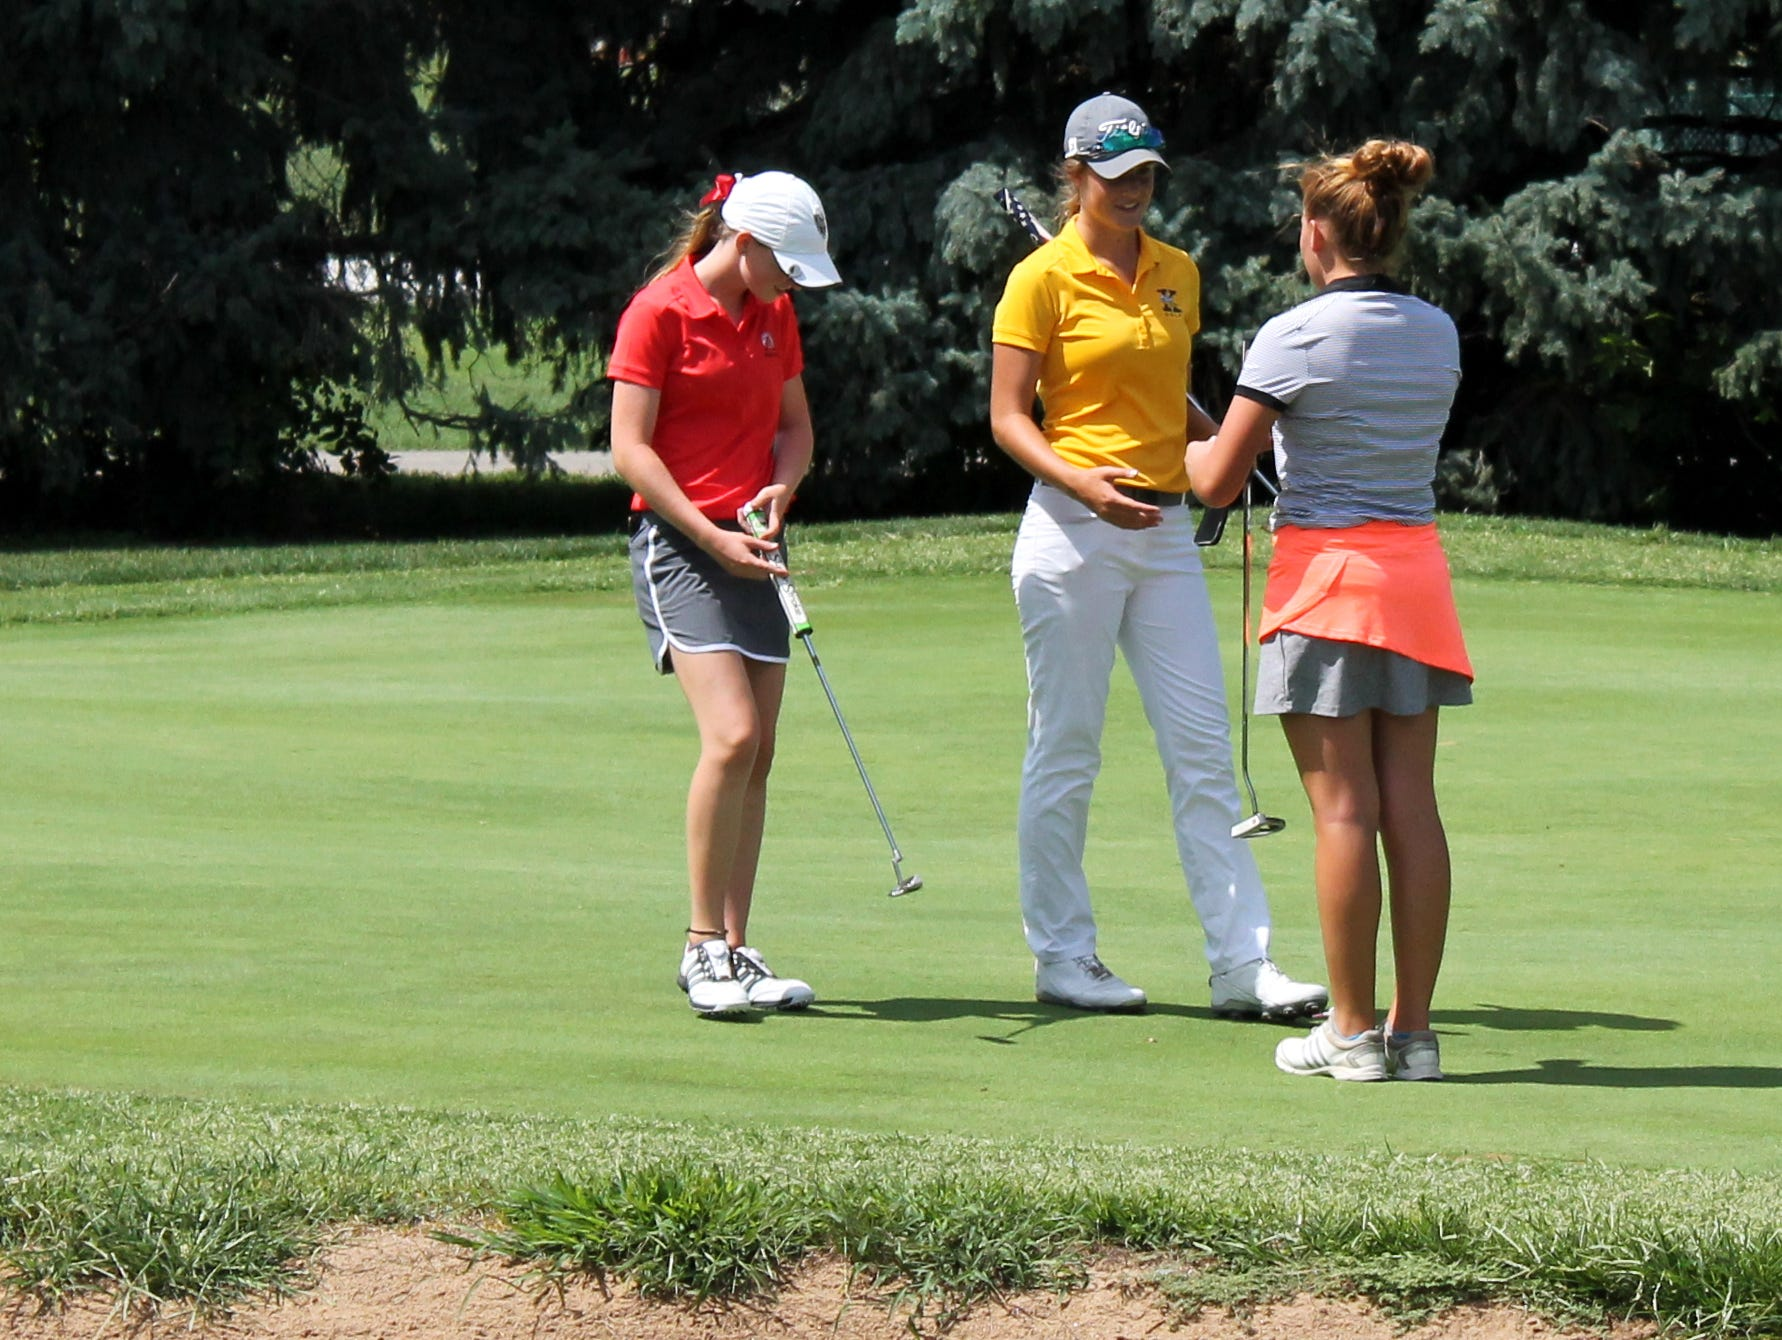 From left: all-state girls golf players Wriley Hiebert of Glendale, Ari Acuff of Kickapoo and two-time state tournament qualifier Katie Hamilton of Republic at the conclusion of a 2016 tournament round.